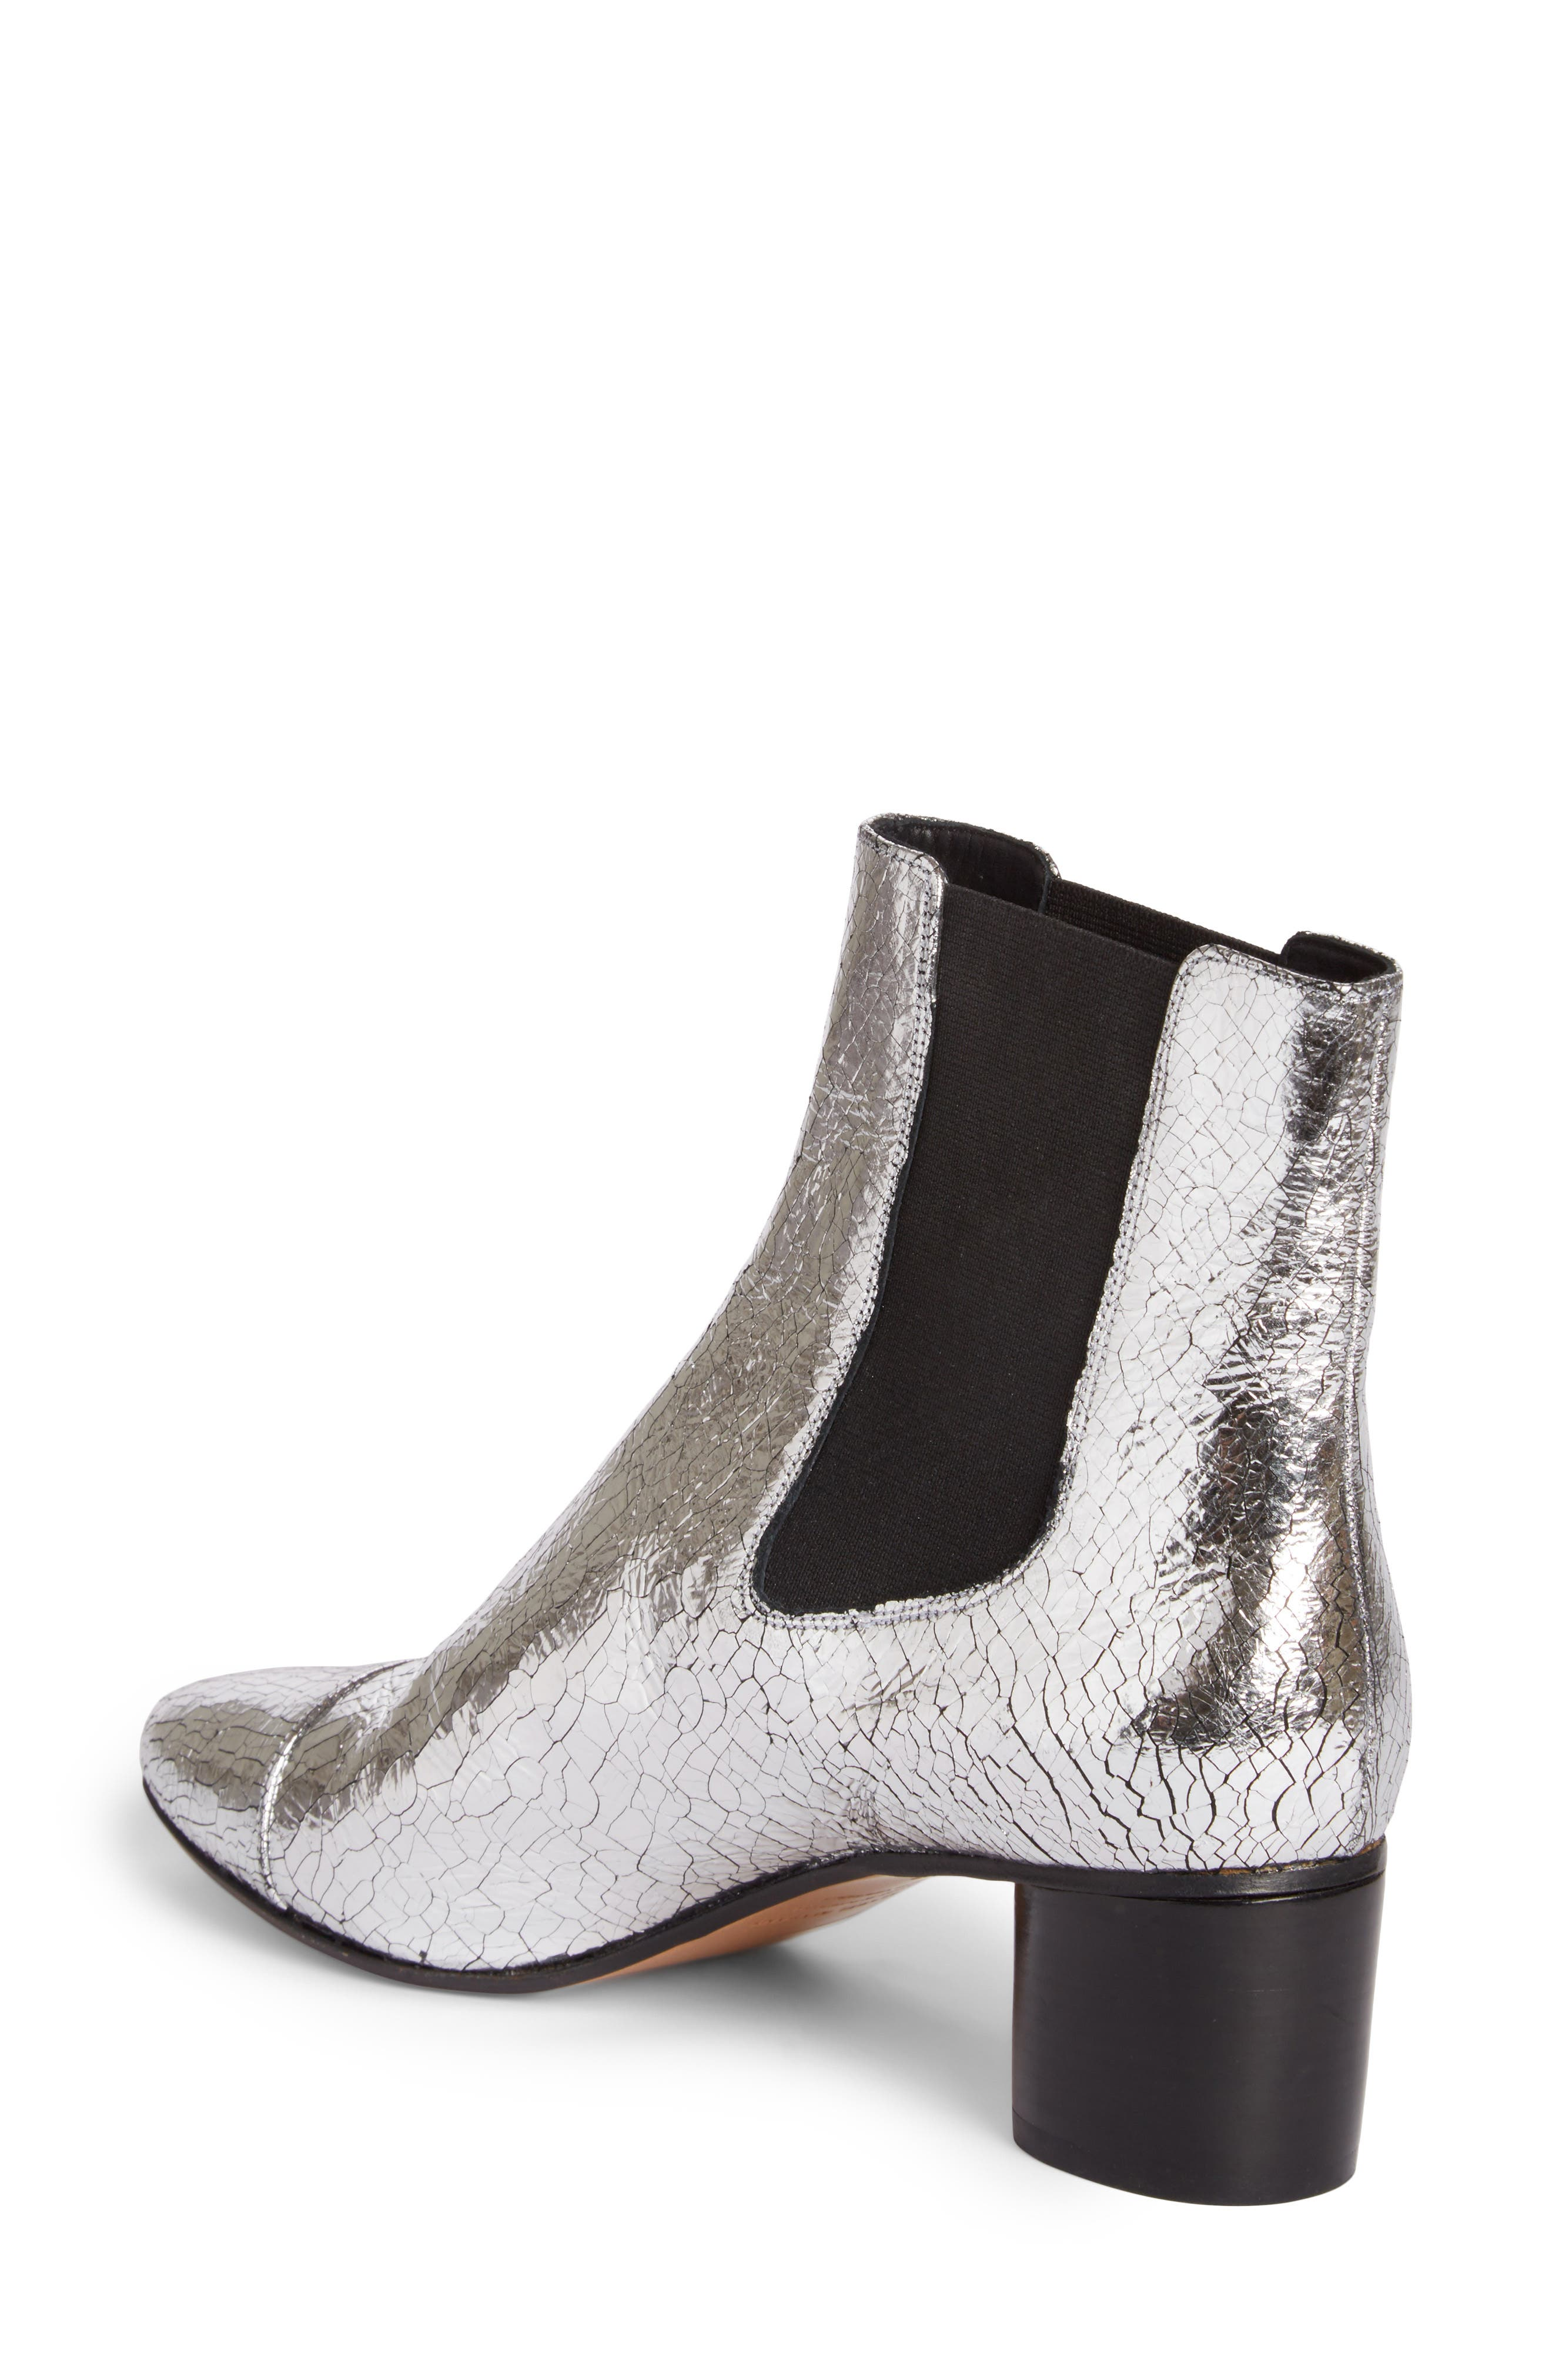 Danelya Chelsea Boot,                             Alternate thumbnail 2, color,                             049